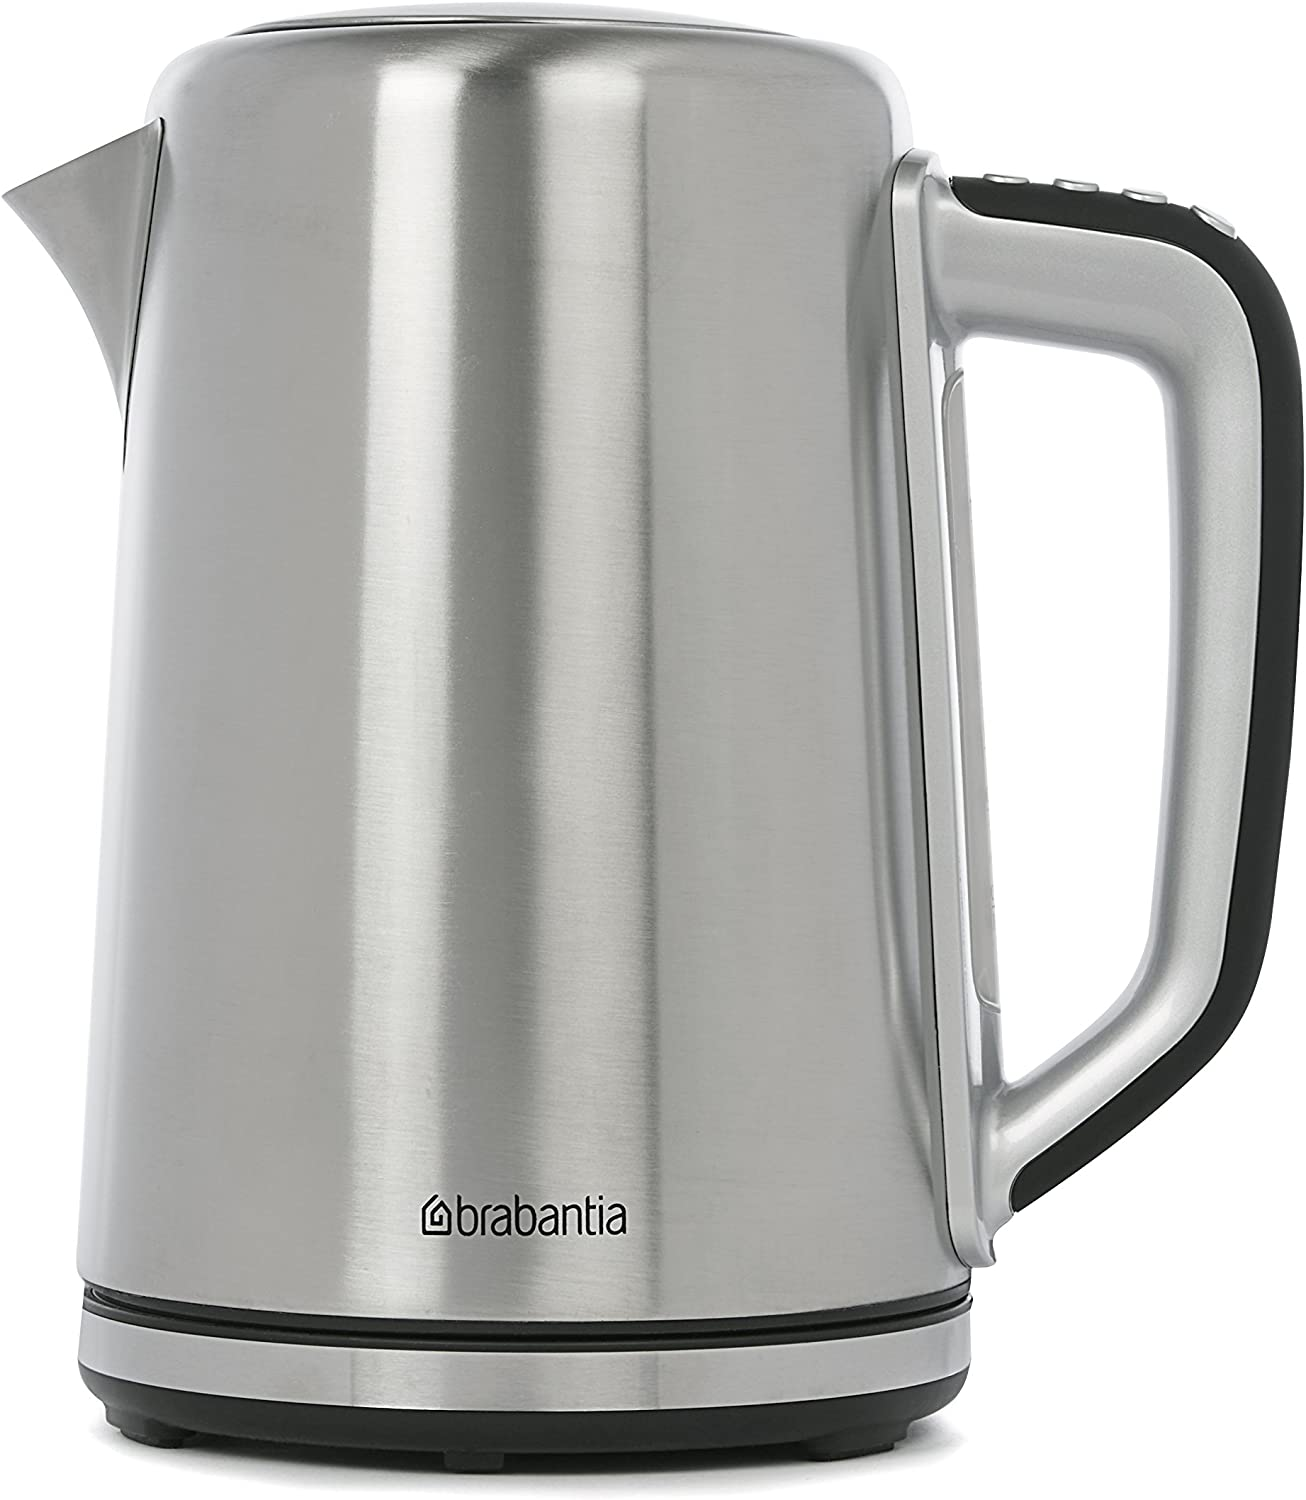 Brabantia Kettle (Black and Silver